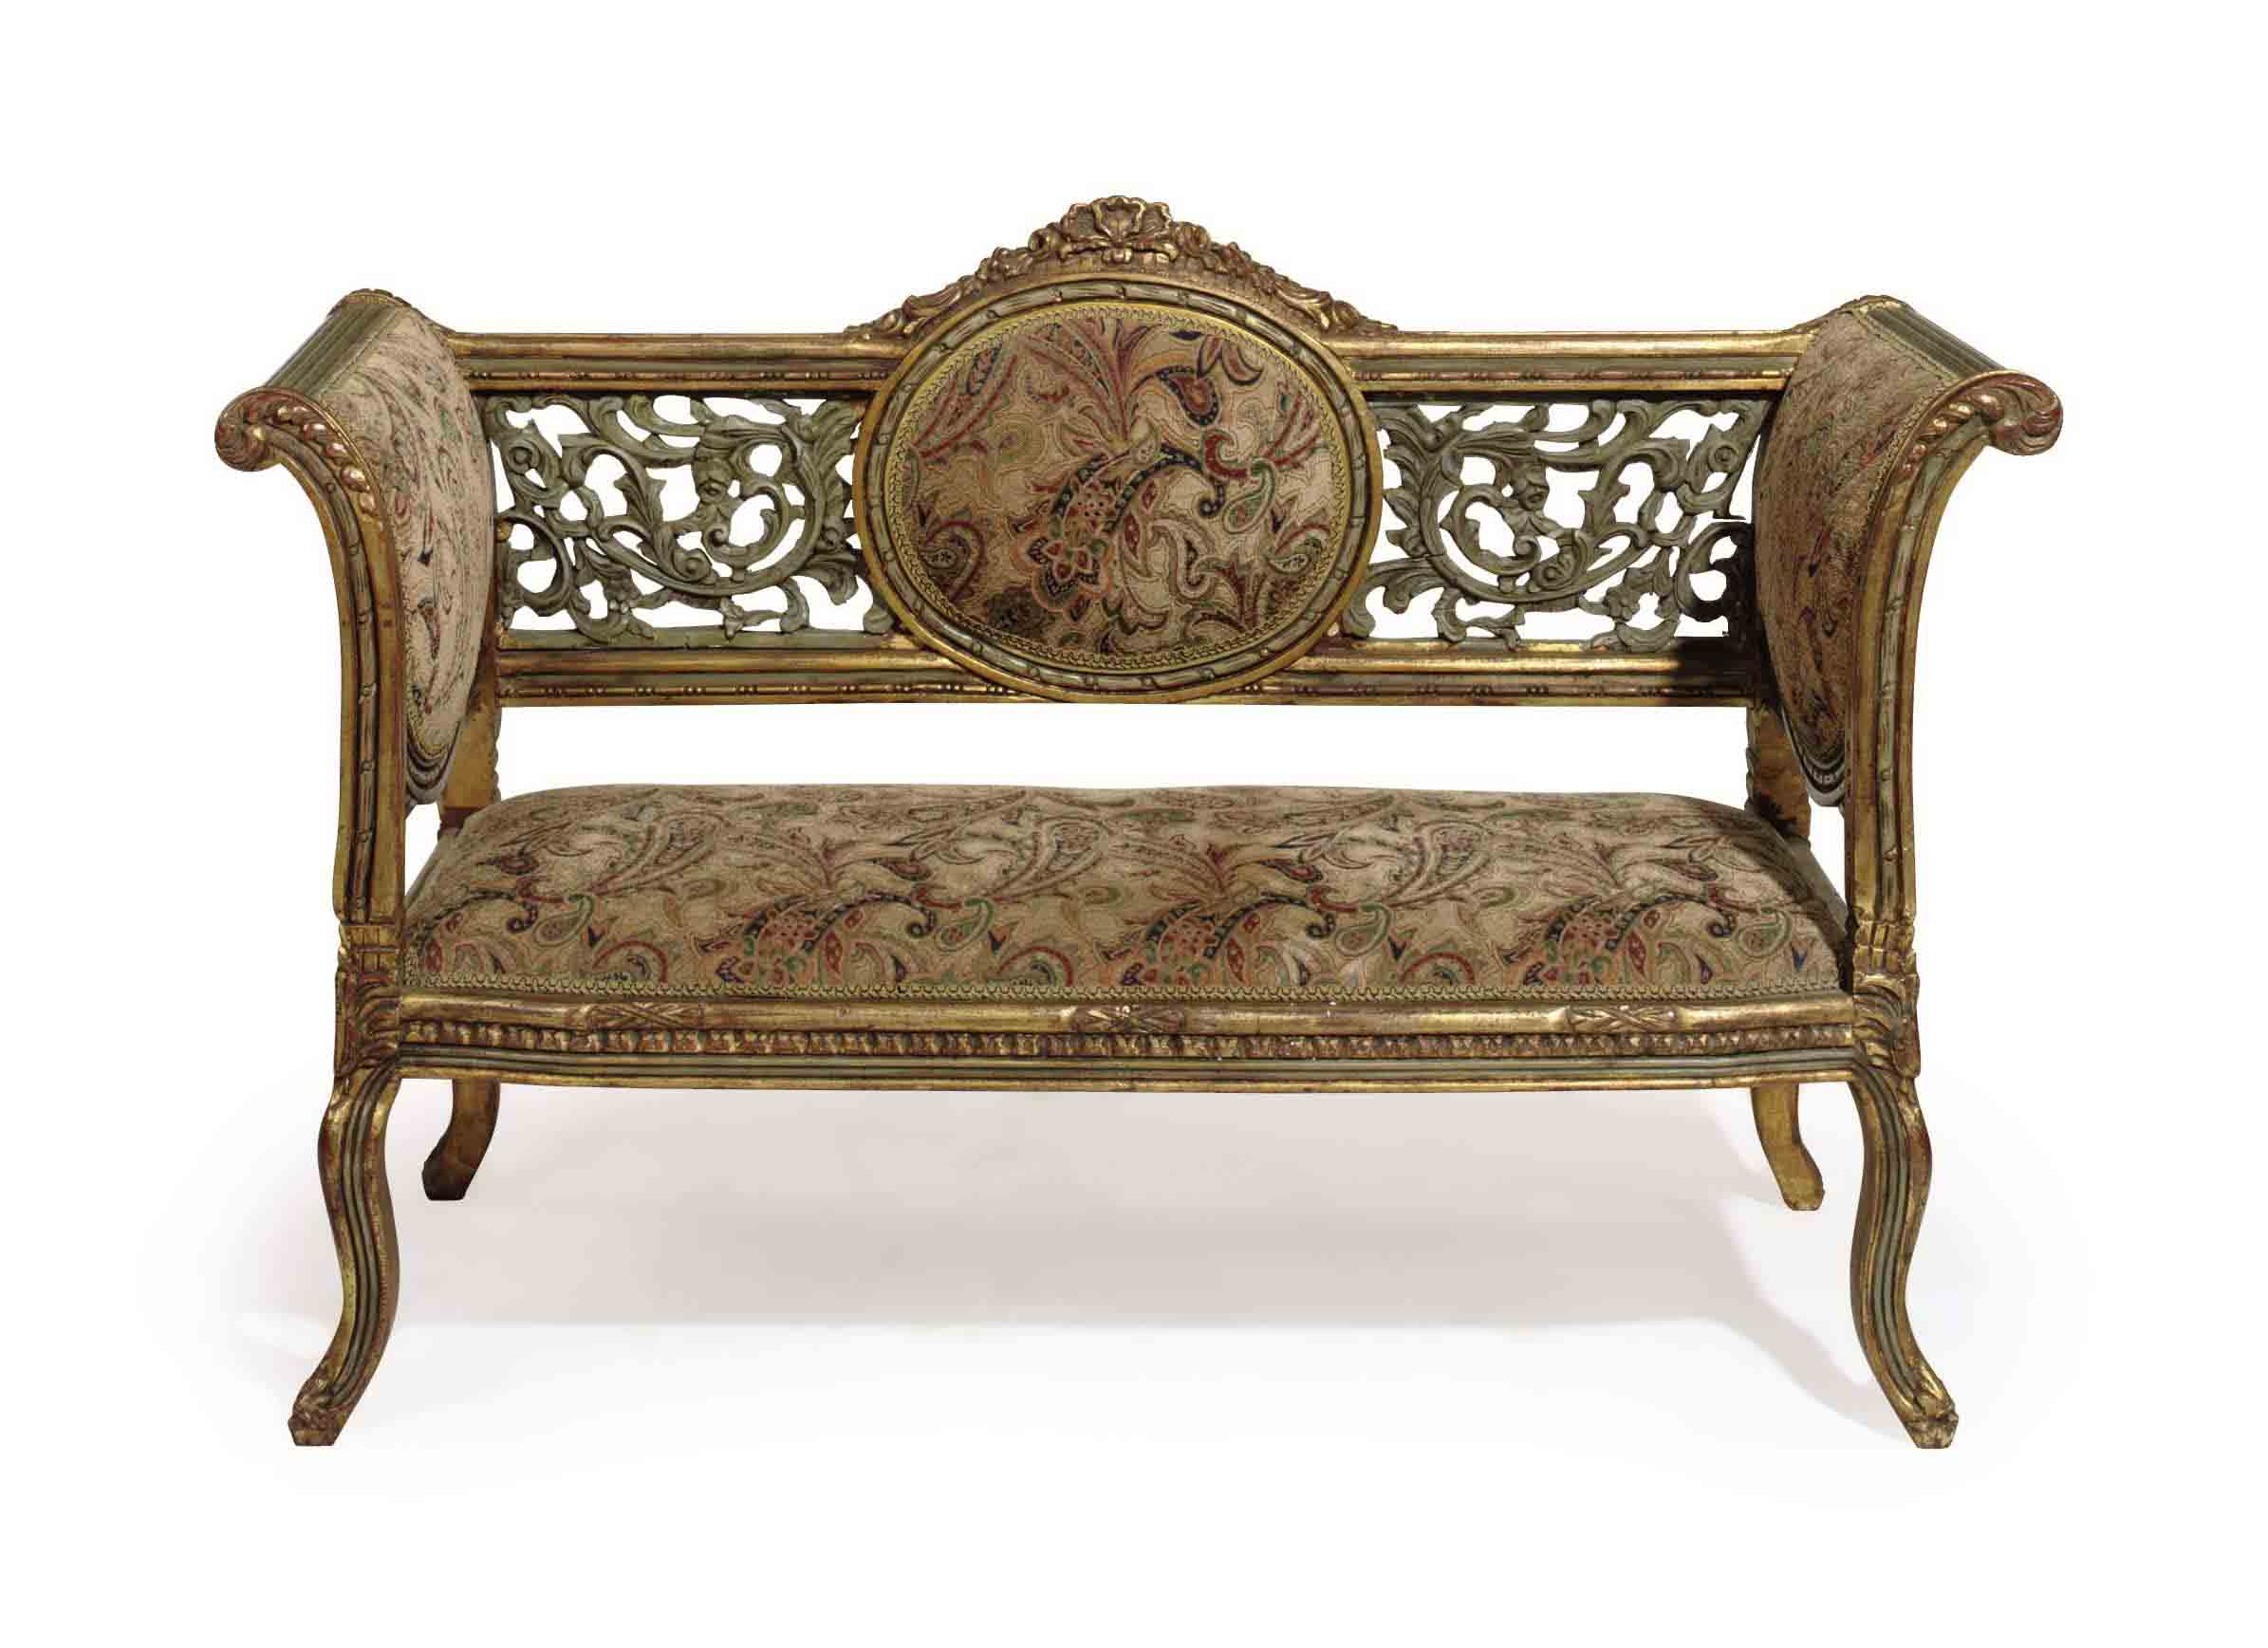 A GREY-PAINTED AND PARCEL-GILT